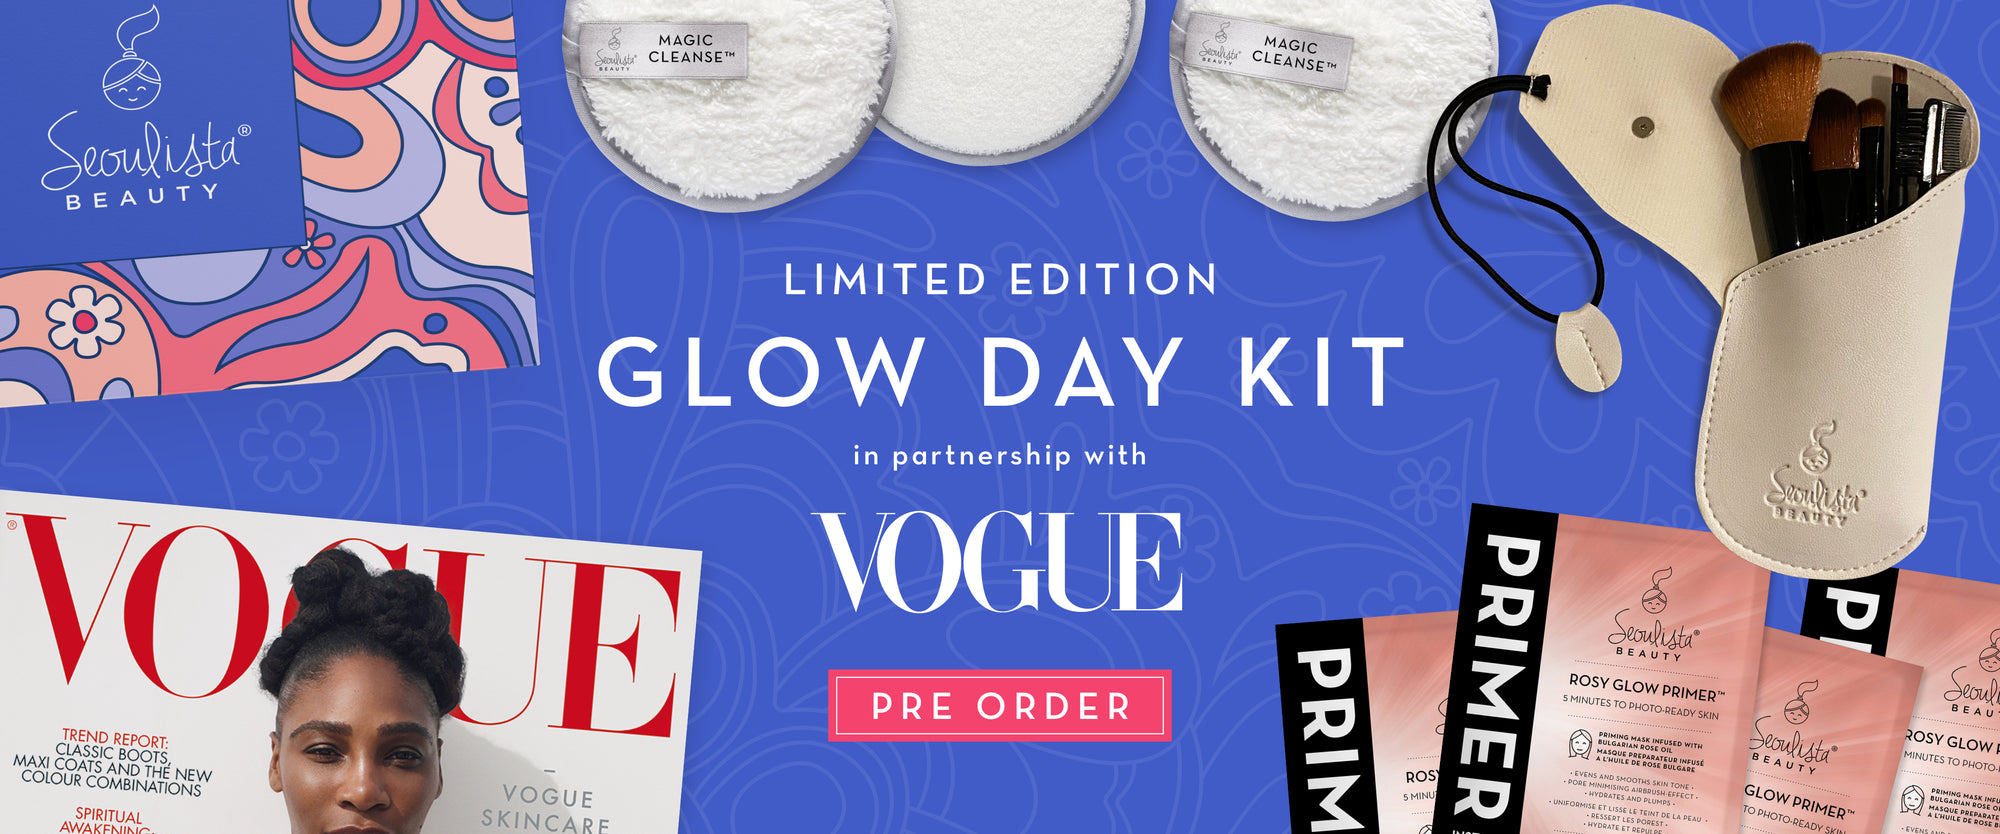 Glow Day Kit in partnership with Vogue